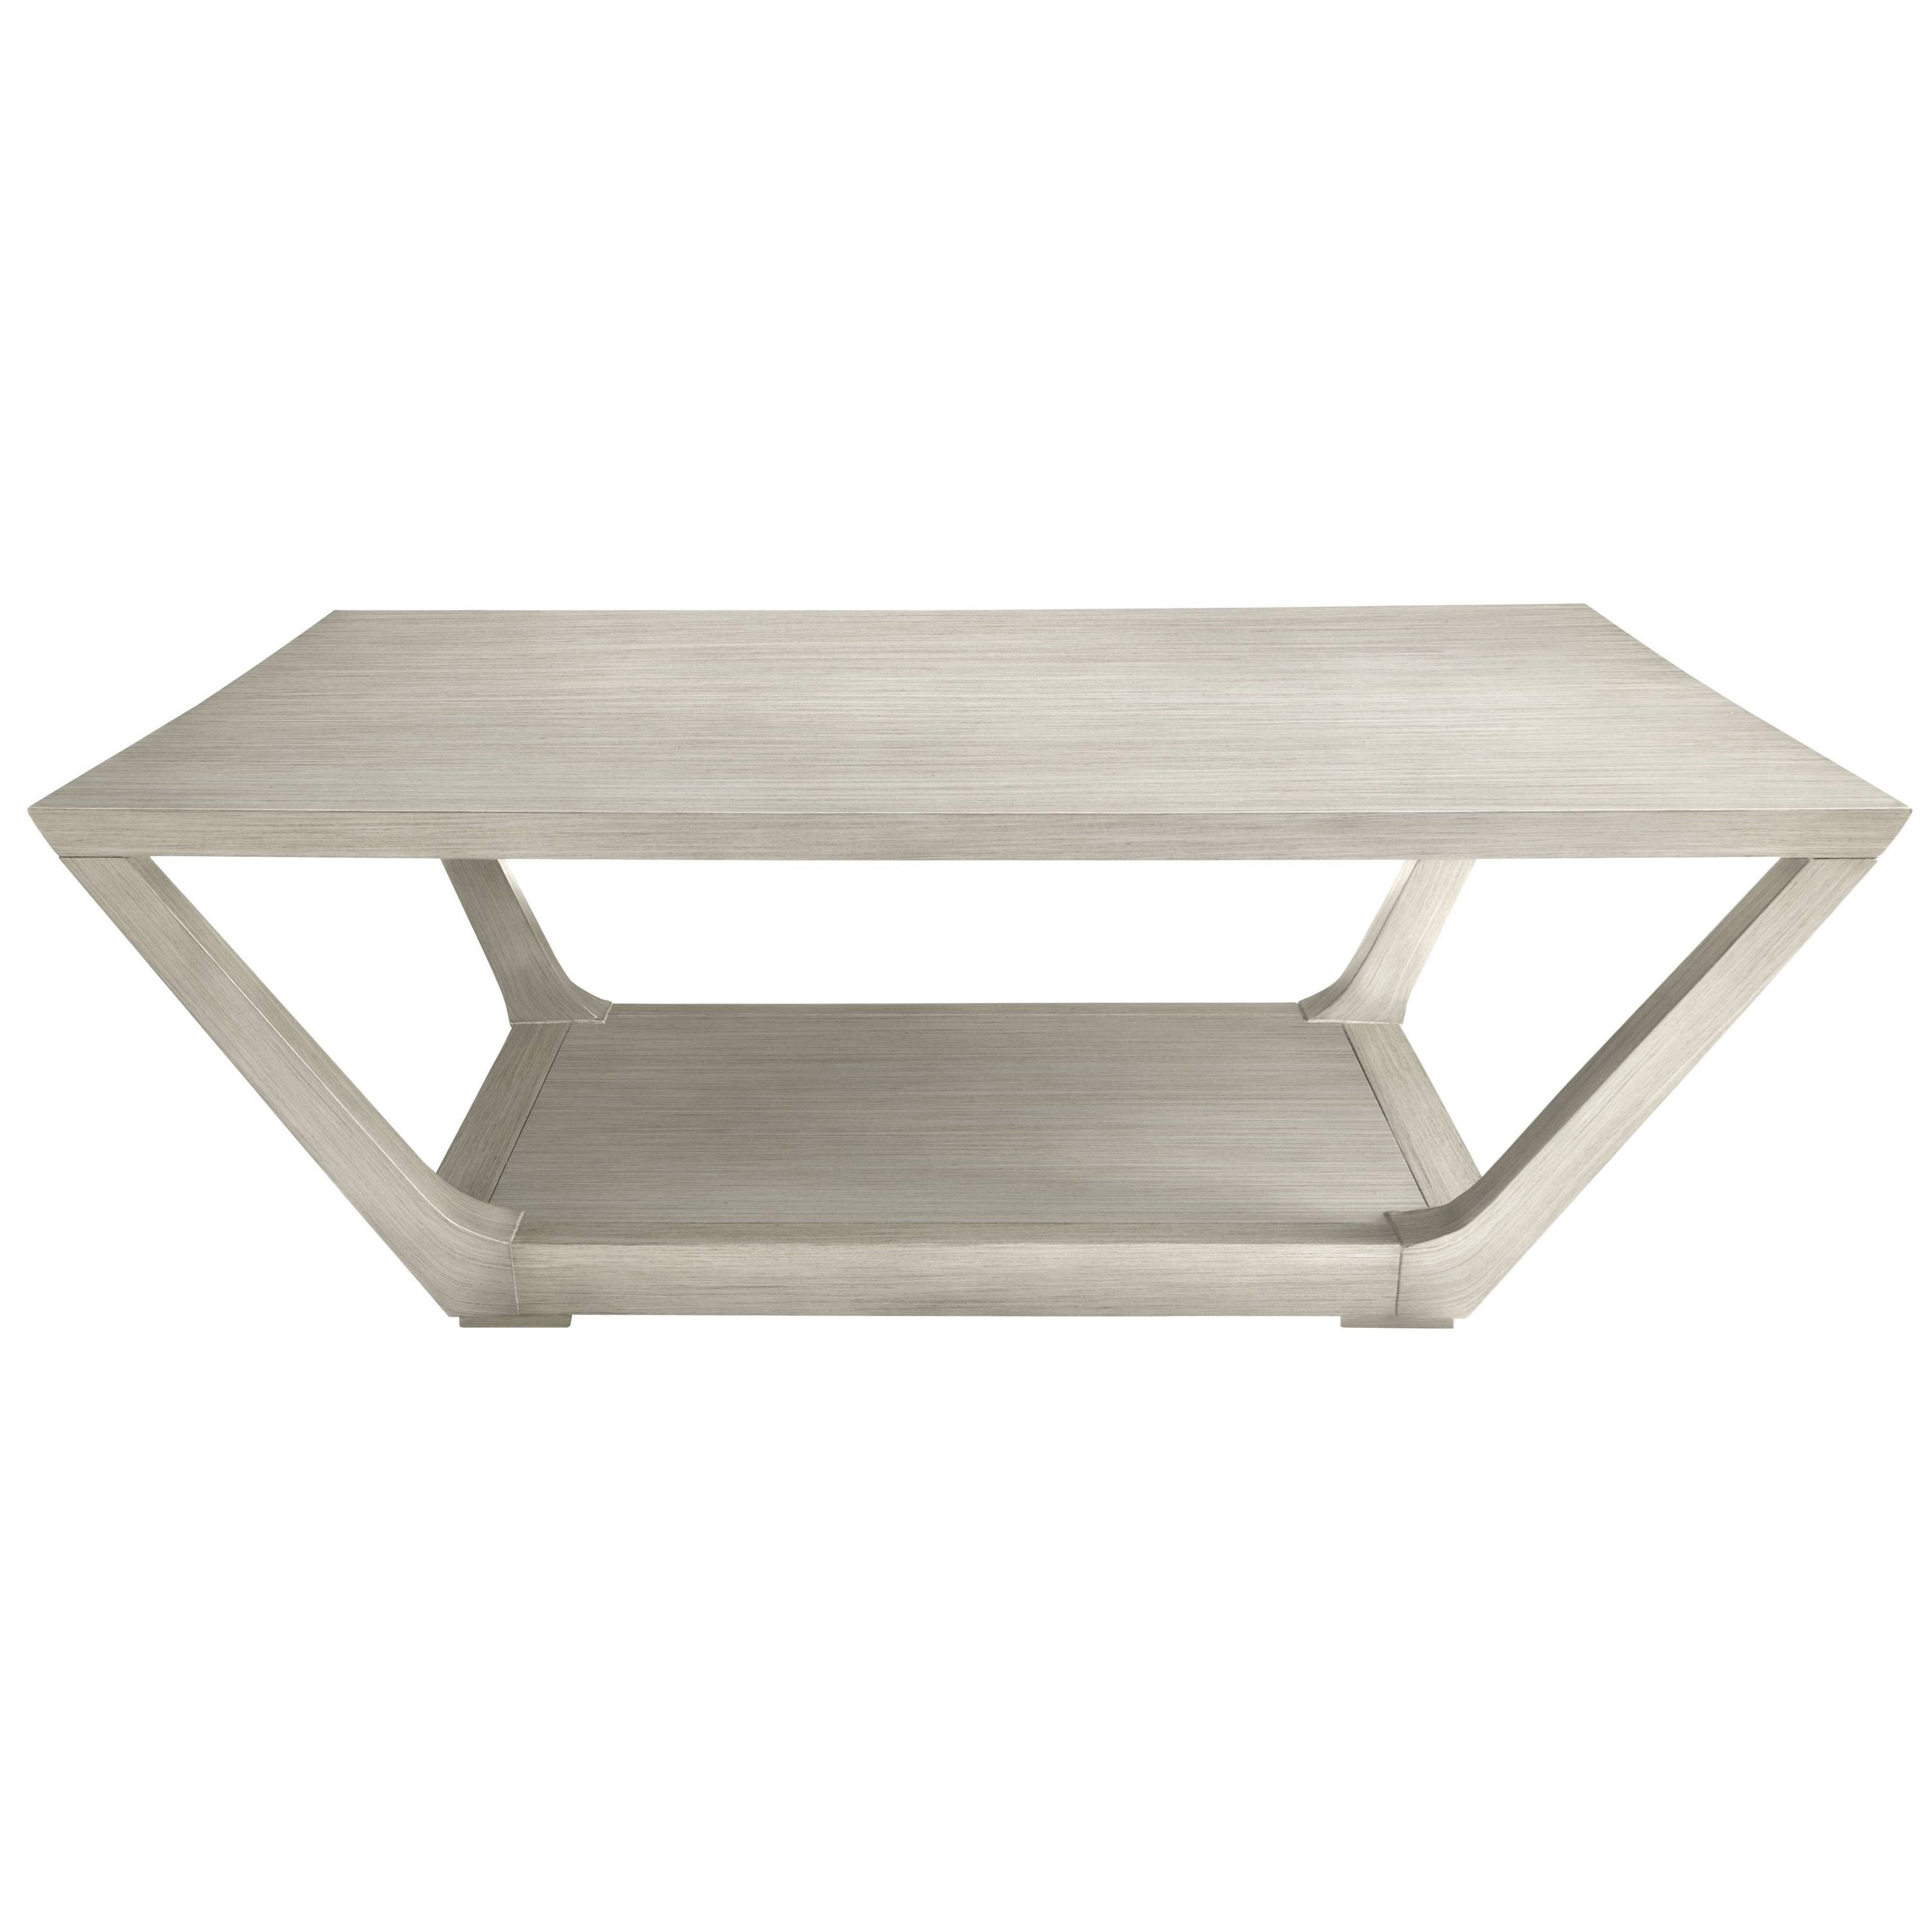 Stanley Furniture Coastal Living Oasis Poseidon Cocktail Table - Item Number: 527-55-02